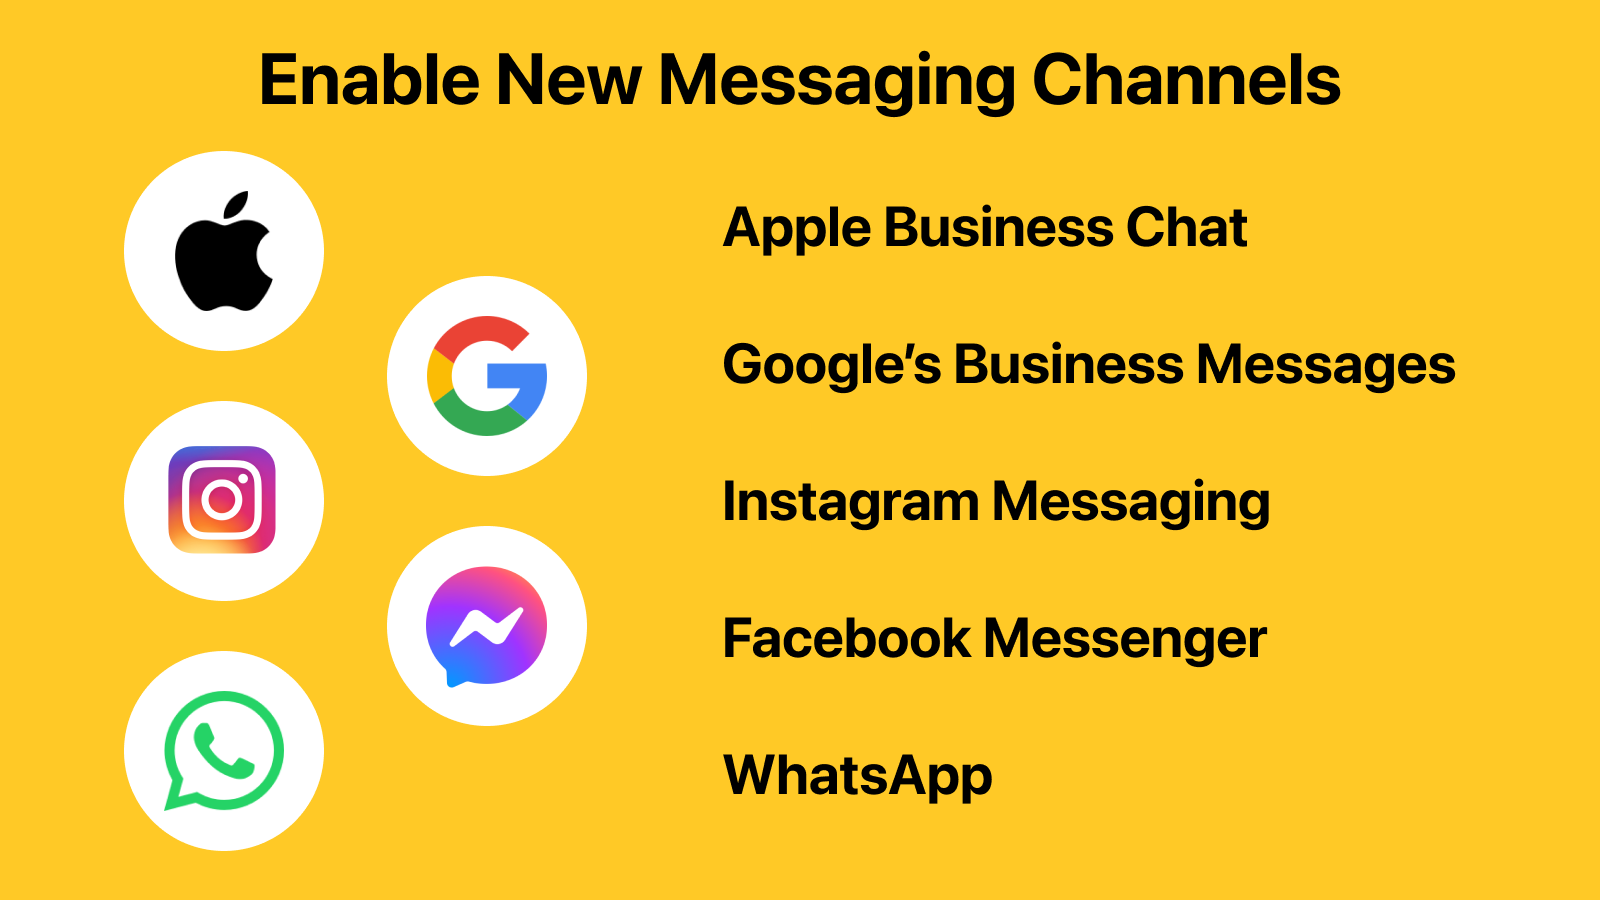 Enable New Messaging Channels